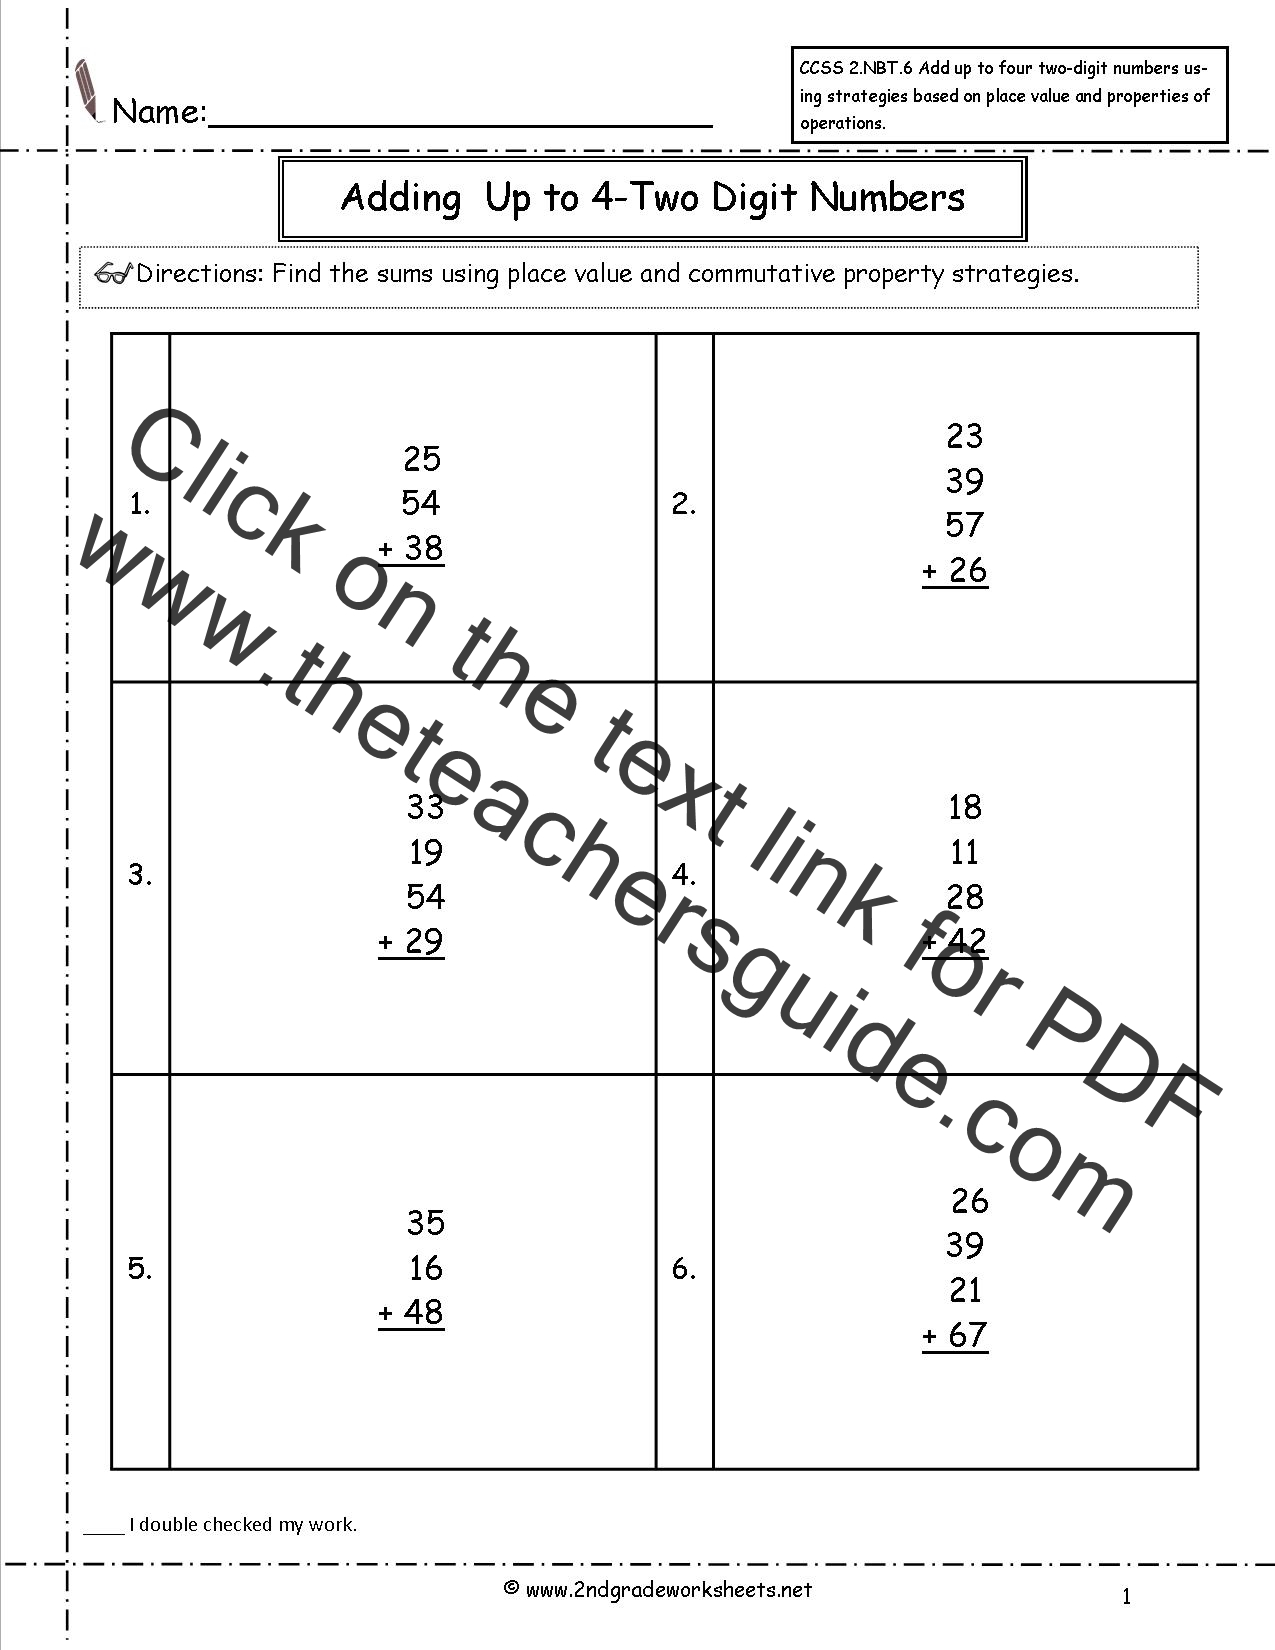 CCSS 2.NBT.6 Worksheets. Adding up to Four 2-Digit Numbers Worksheets.